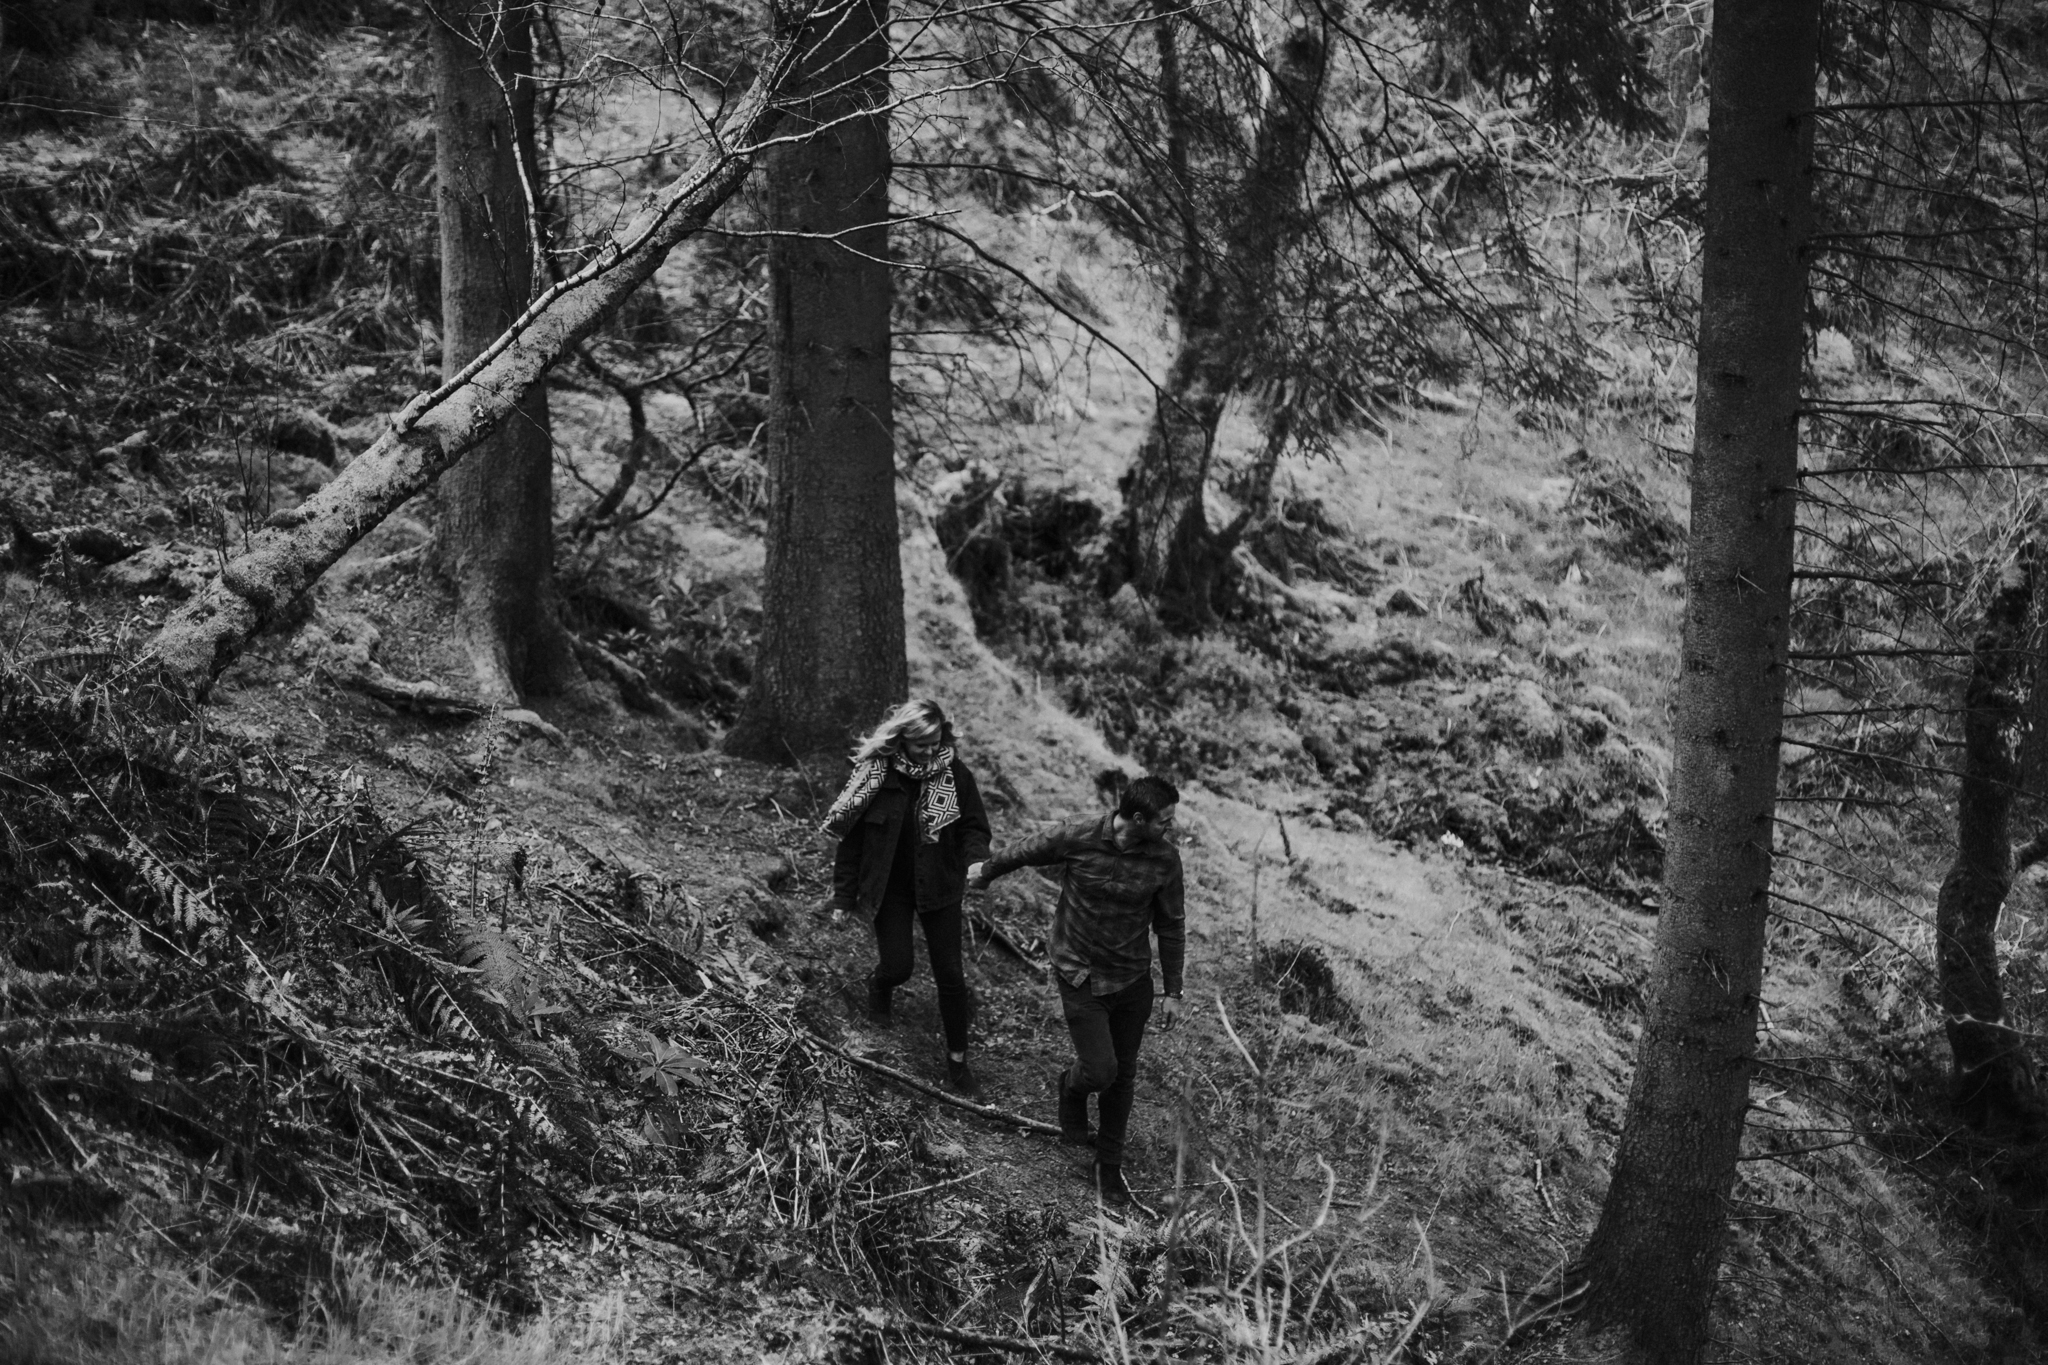 The adventurous newly engaged couple is exploring the Balmaha forest in Loch Lomond area